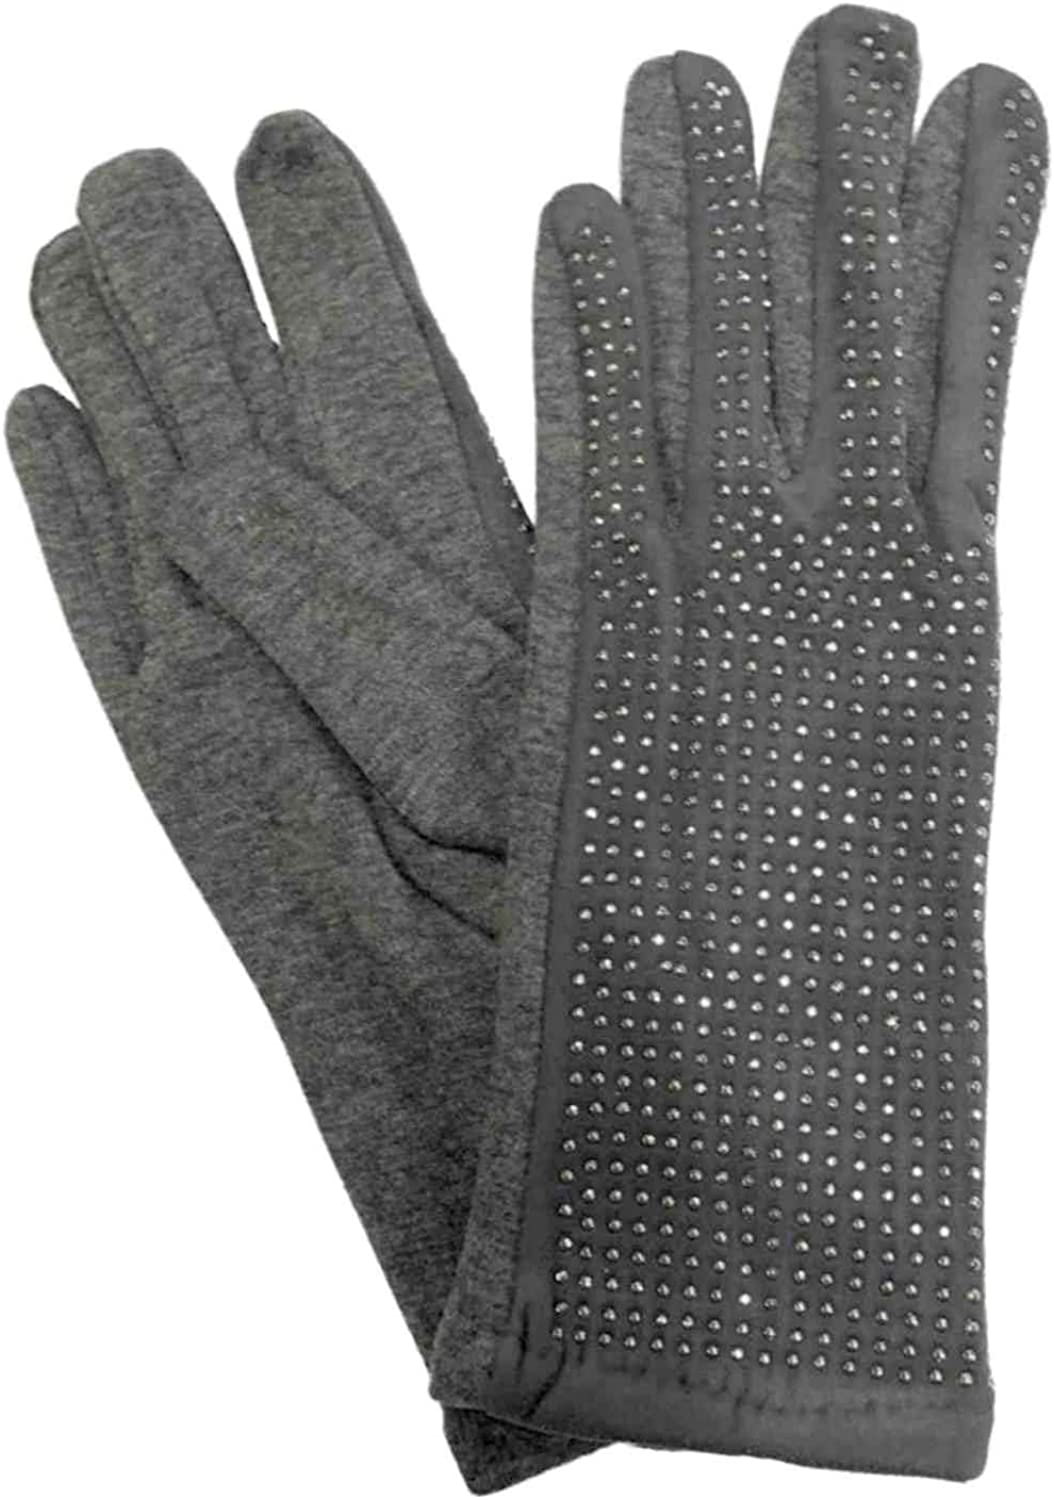 Womens Gray Rhinestone Sparkle Stretch Fit Texting & Tech Touchscreen Gloves